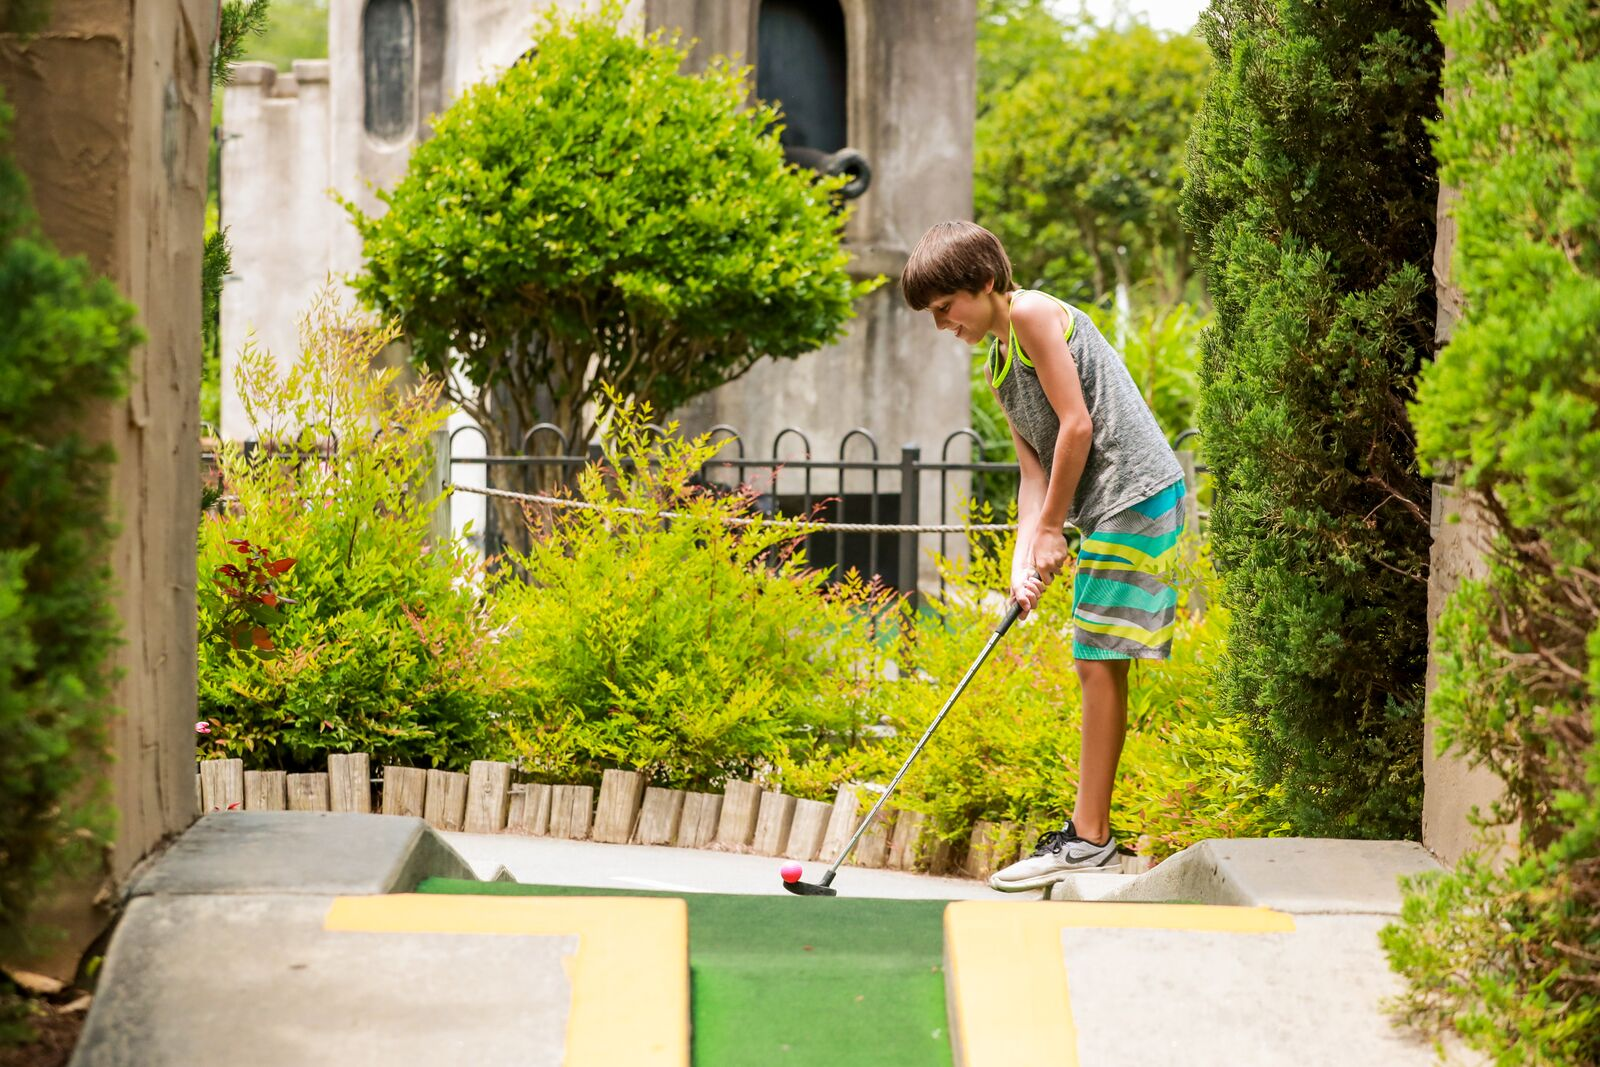 Vista's Best Miniature Golf Course